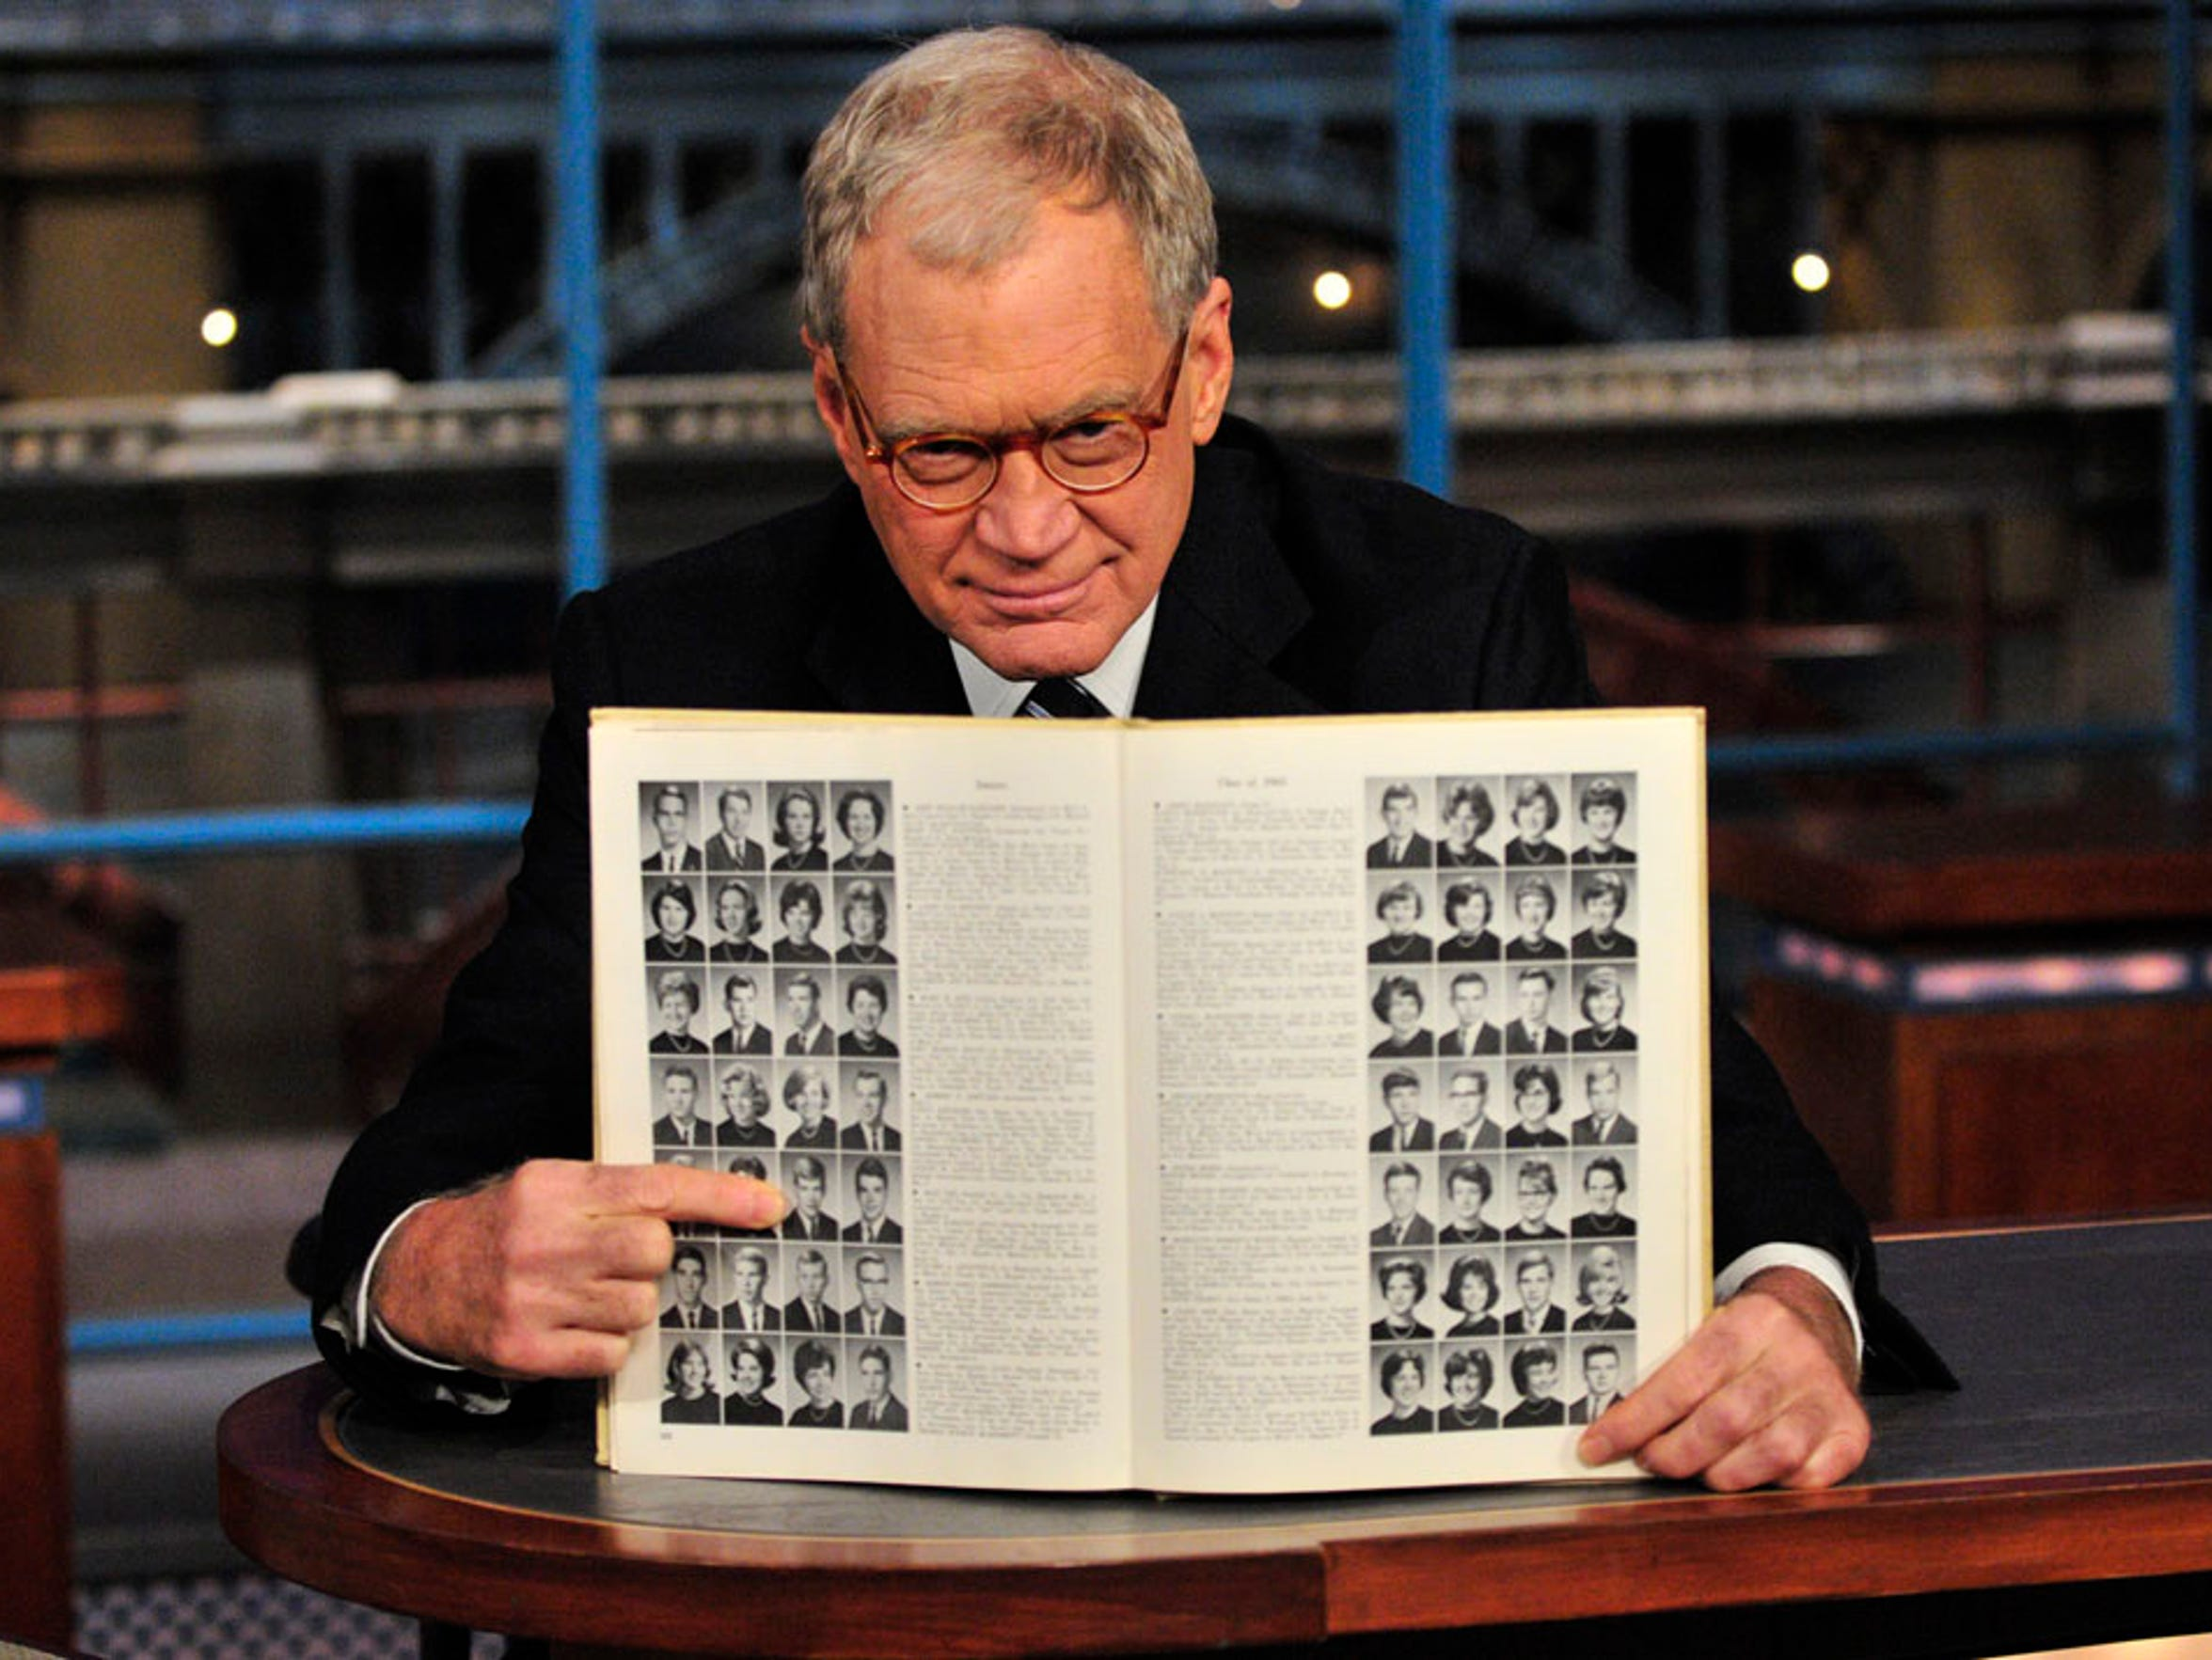 David Letterman points to his Broad Ripple High School